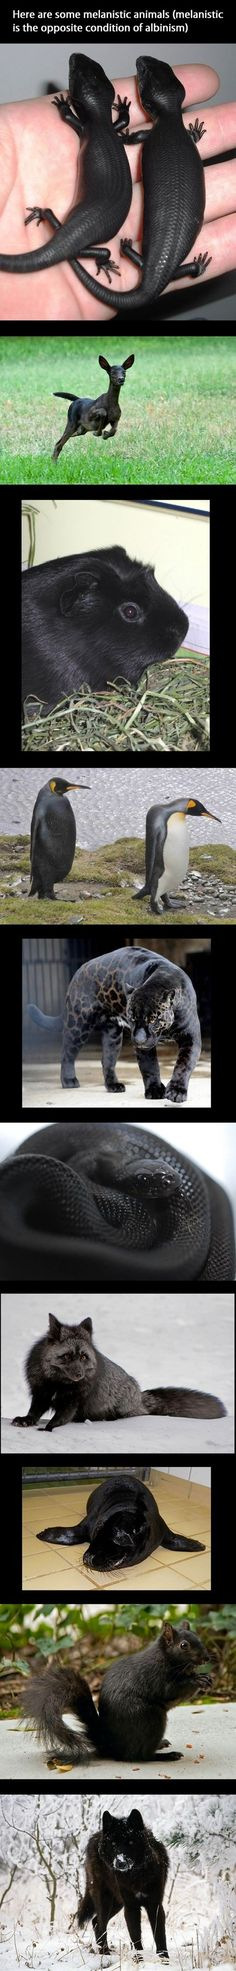 Melanistic Animals, THE OPPOSITE OF ALBINISM, I NEVER KNEW THIS EXISTED, AMAZING !